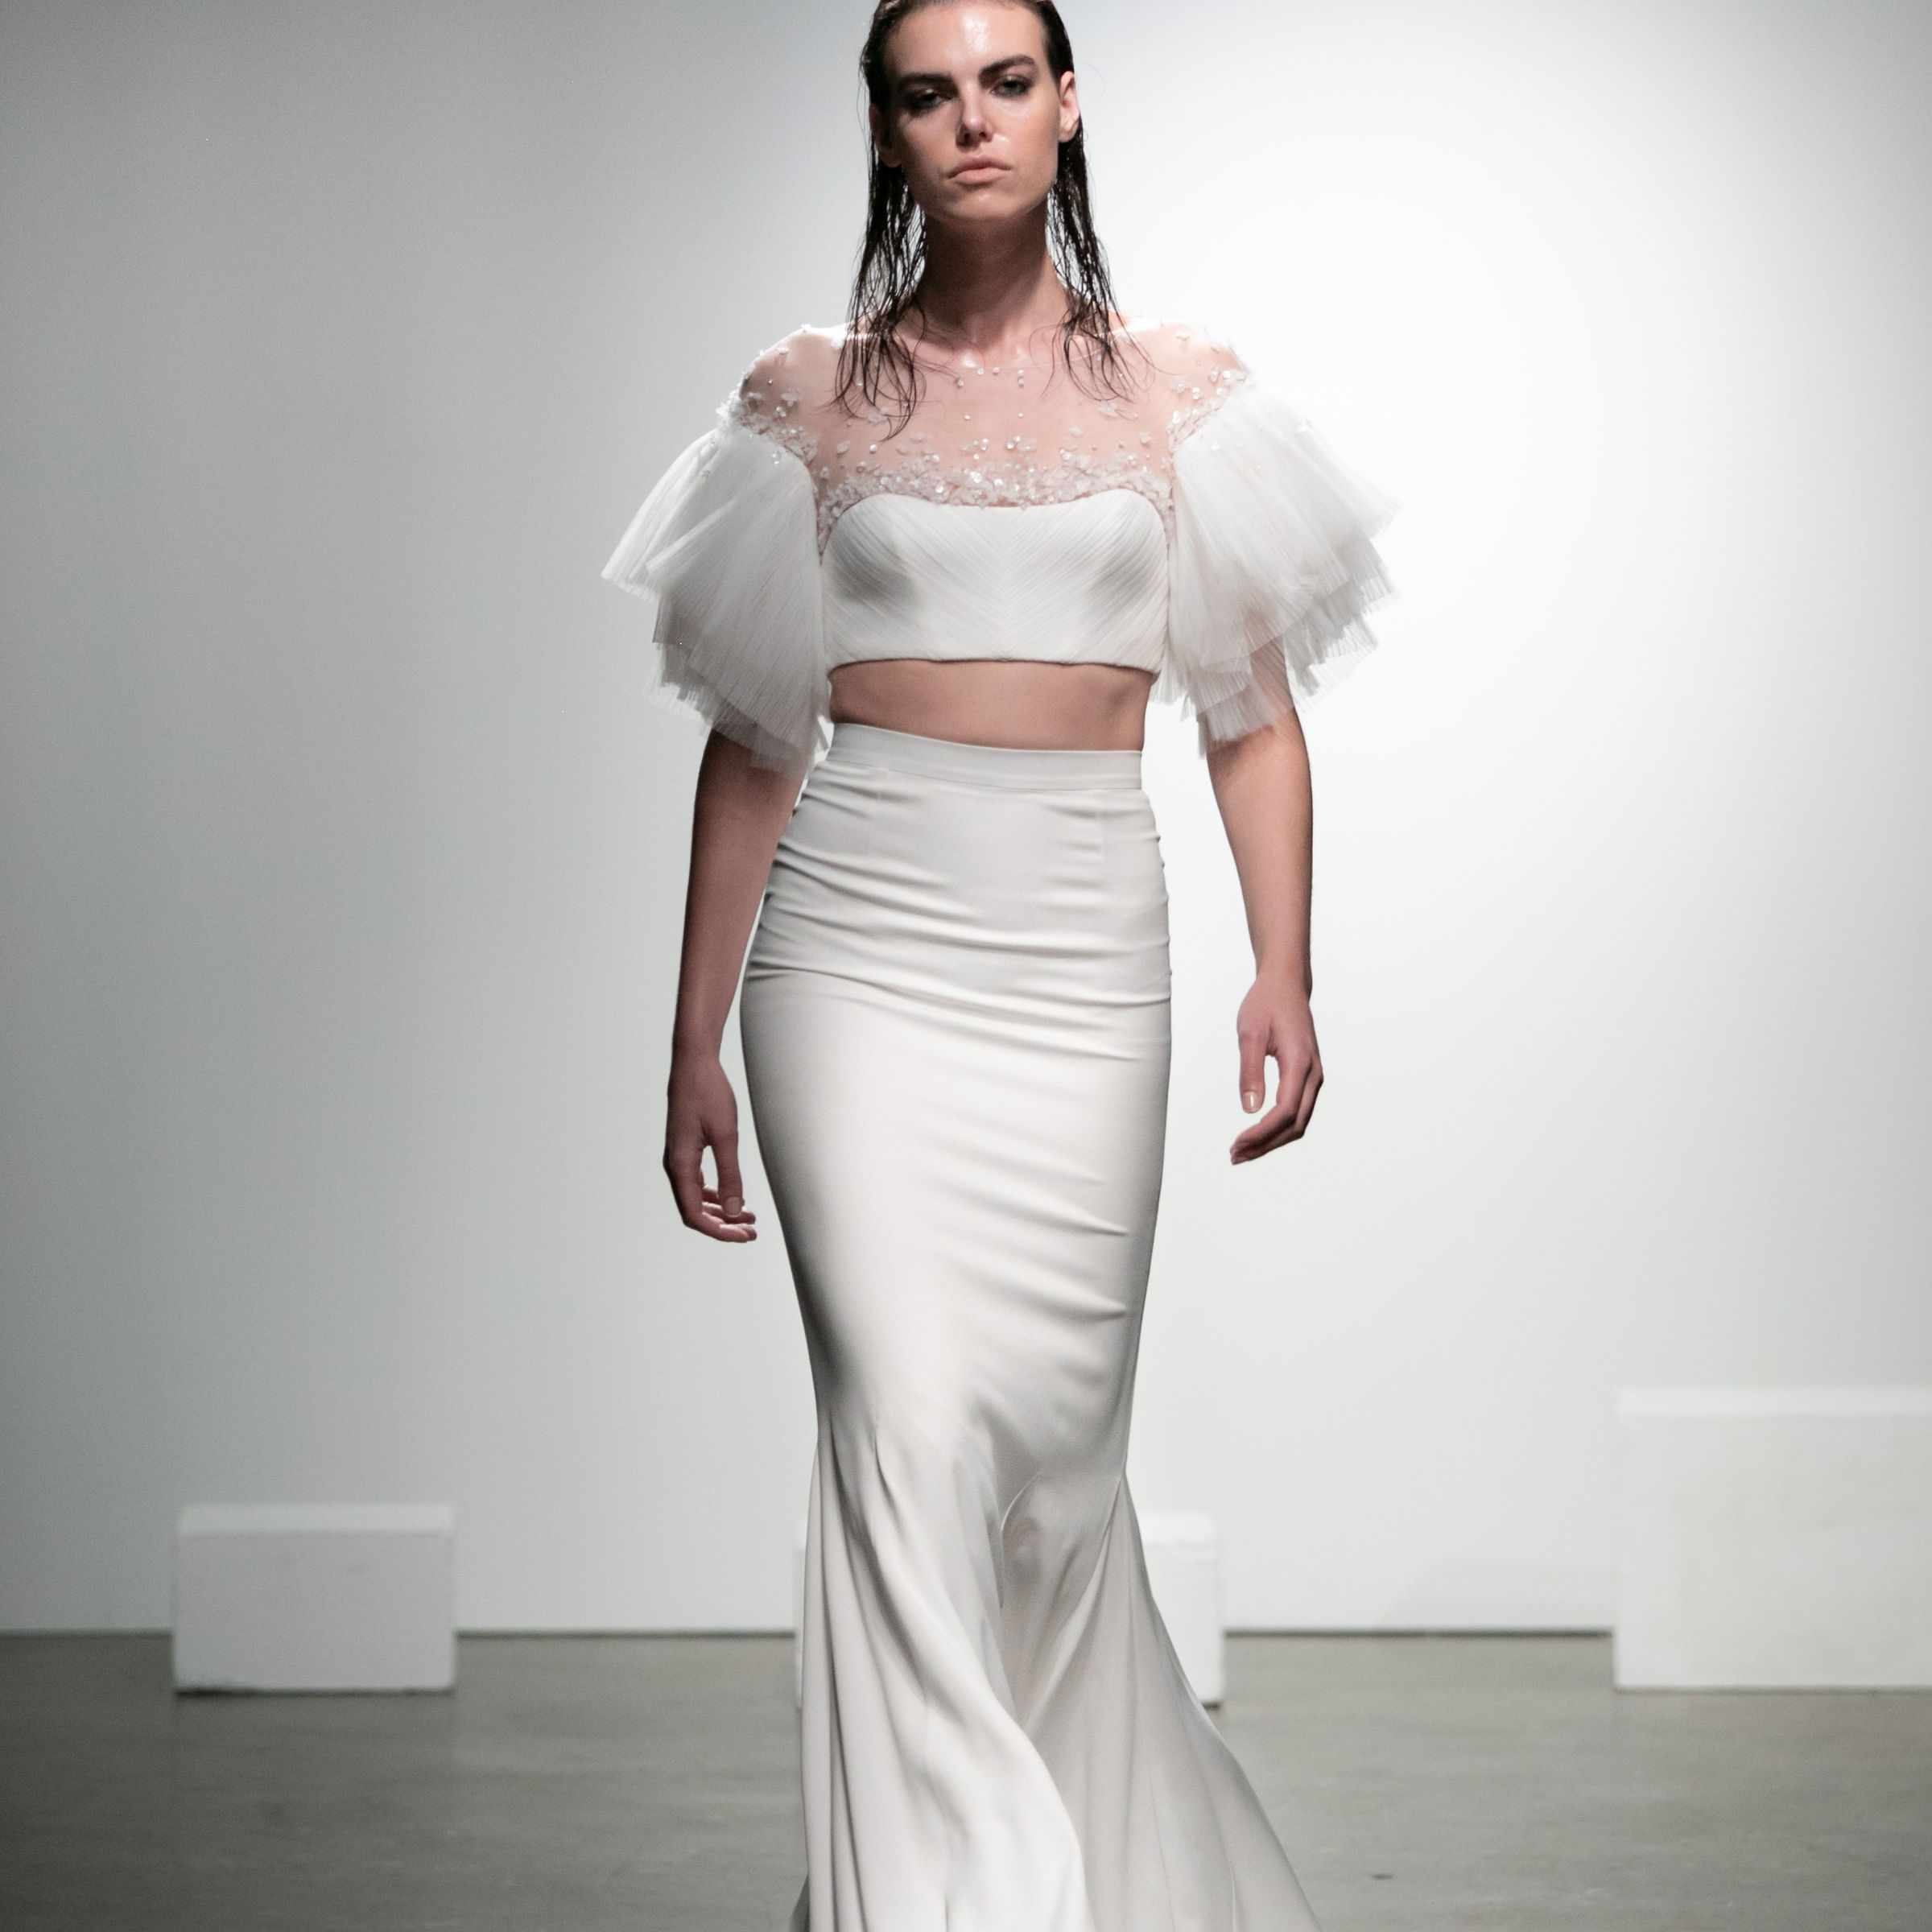 Model in crop top with tulle sleeves and embroidered tulle neckline and long skirt